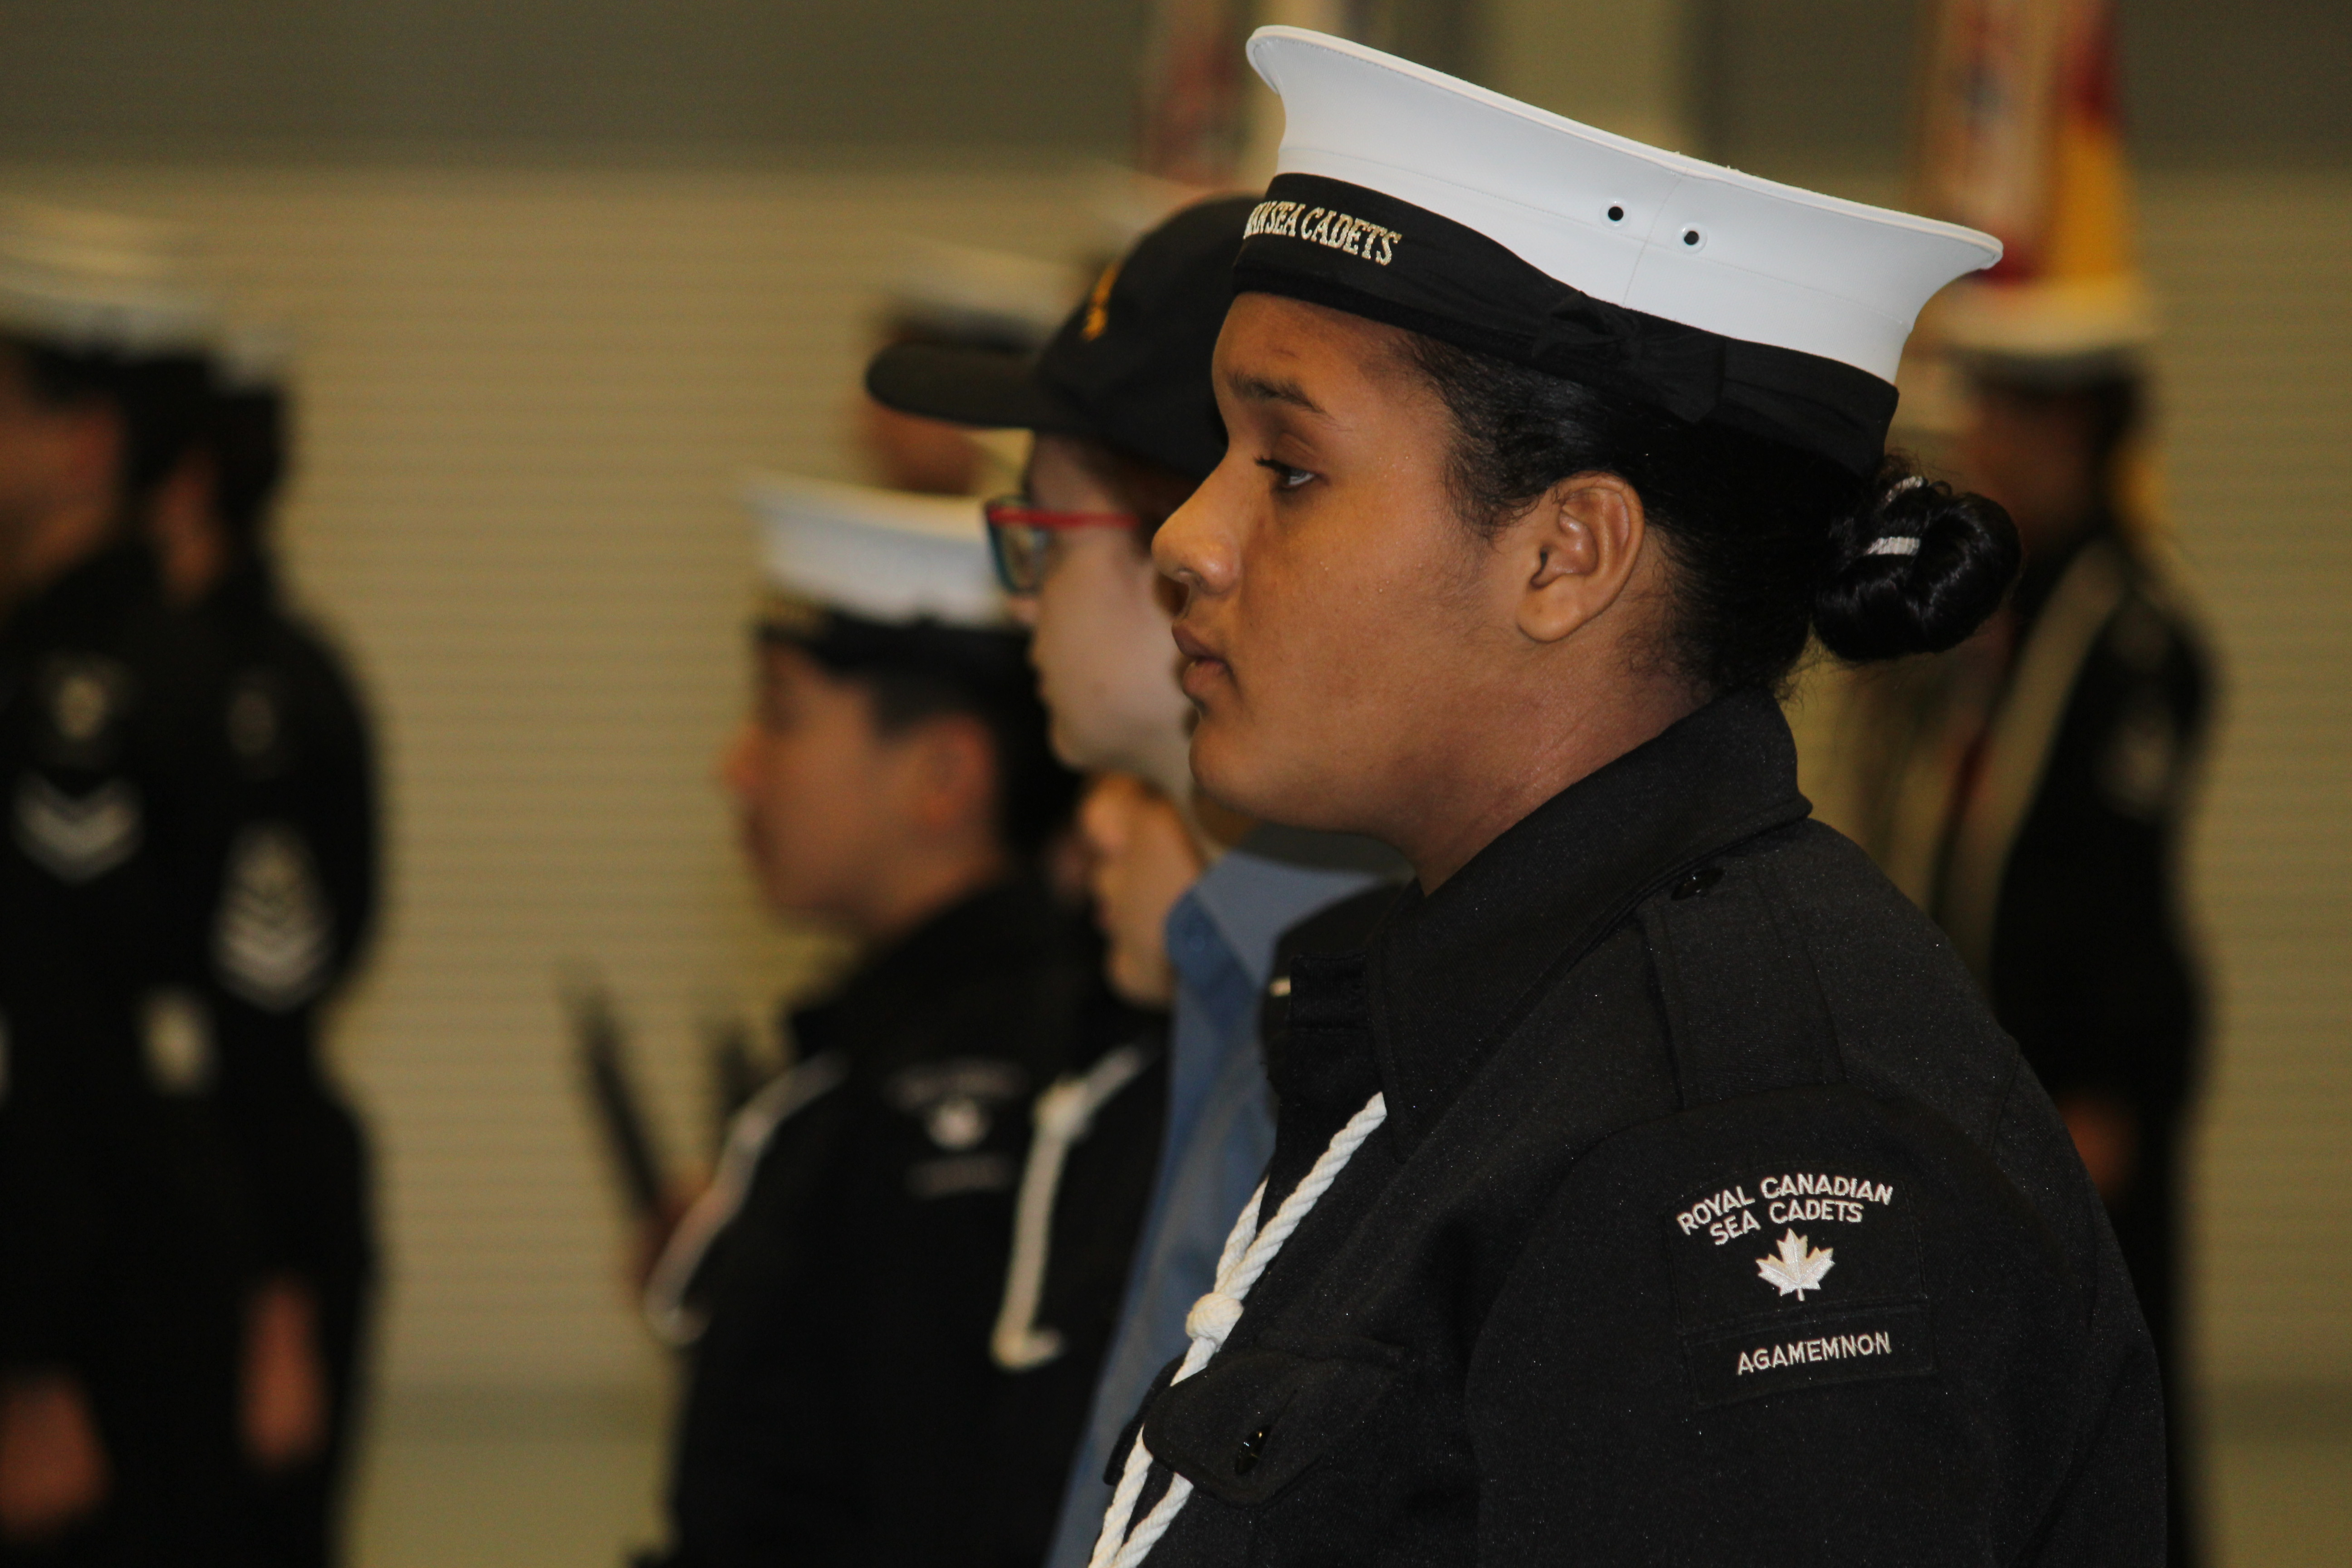 The Royal Canadian Sea Cadet Corps Agamemnon Windsor, Ontario branch seen at the HMCS Hunter building on October 28, 2015. (Photo by Ricardo Veneza)